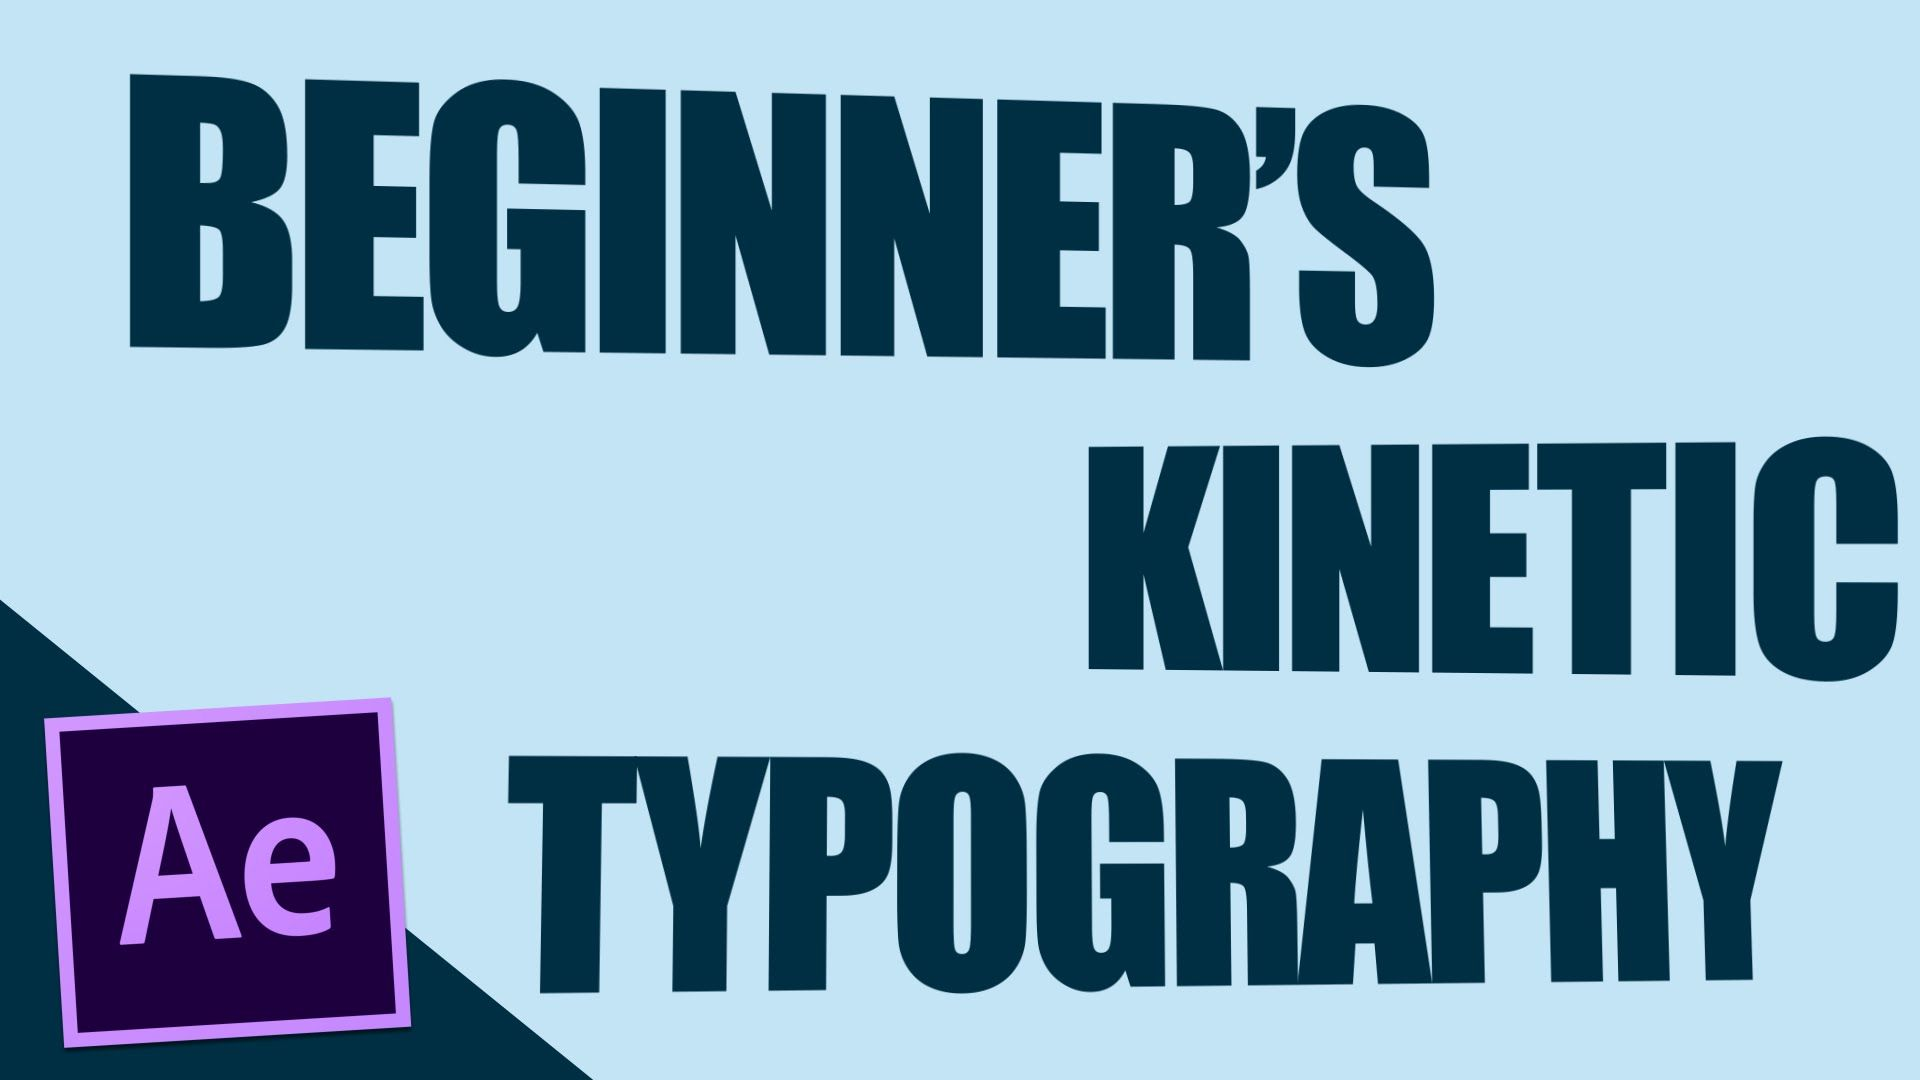 Beginners kinetic typography after effects tutorial 2d beginners kinetic typography after effects tutorial baditri Image collections